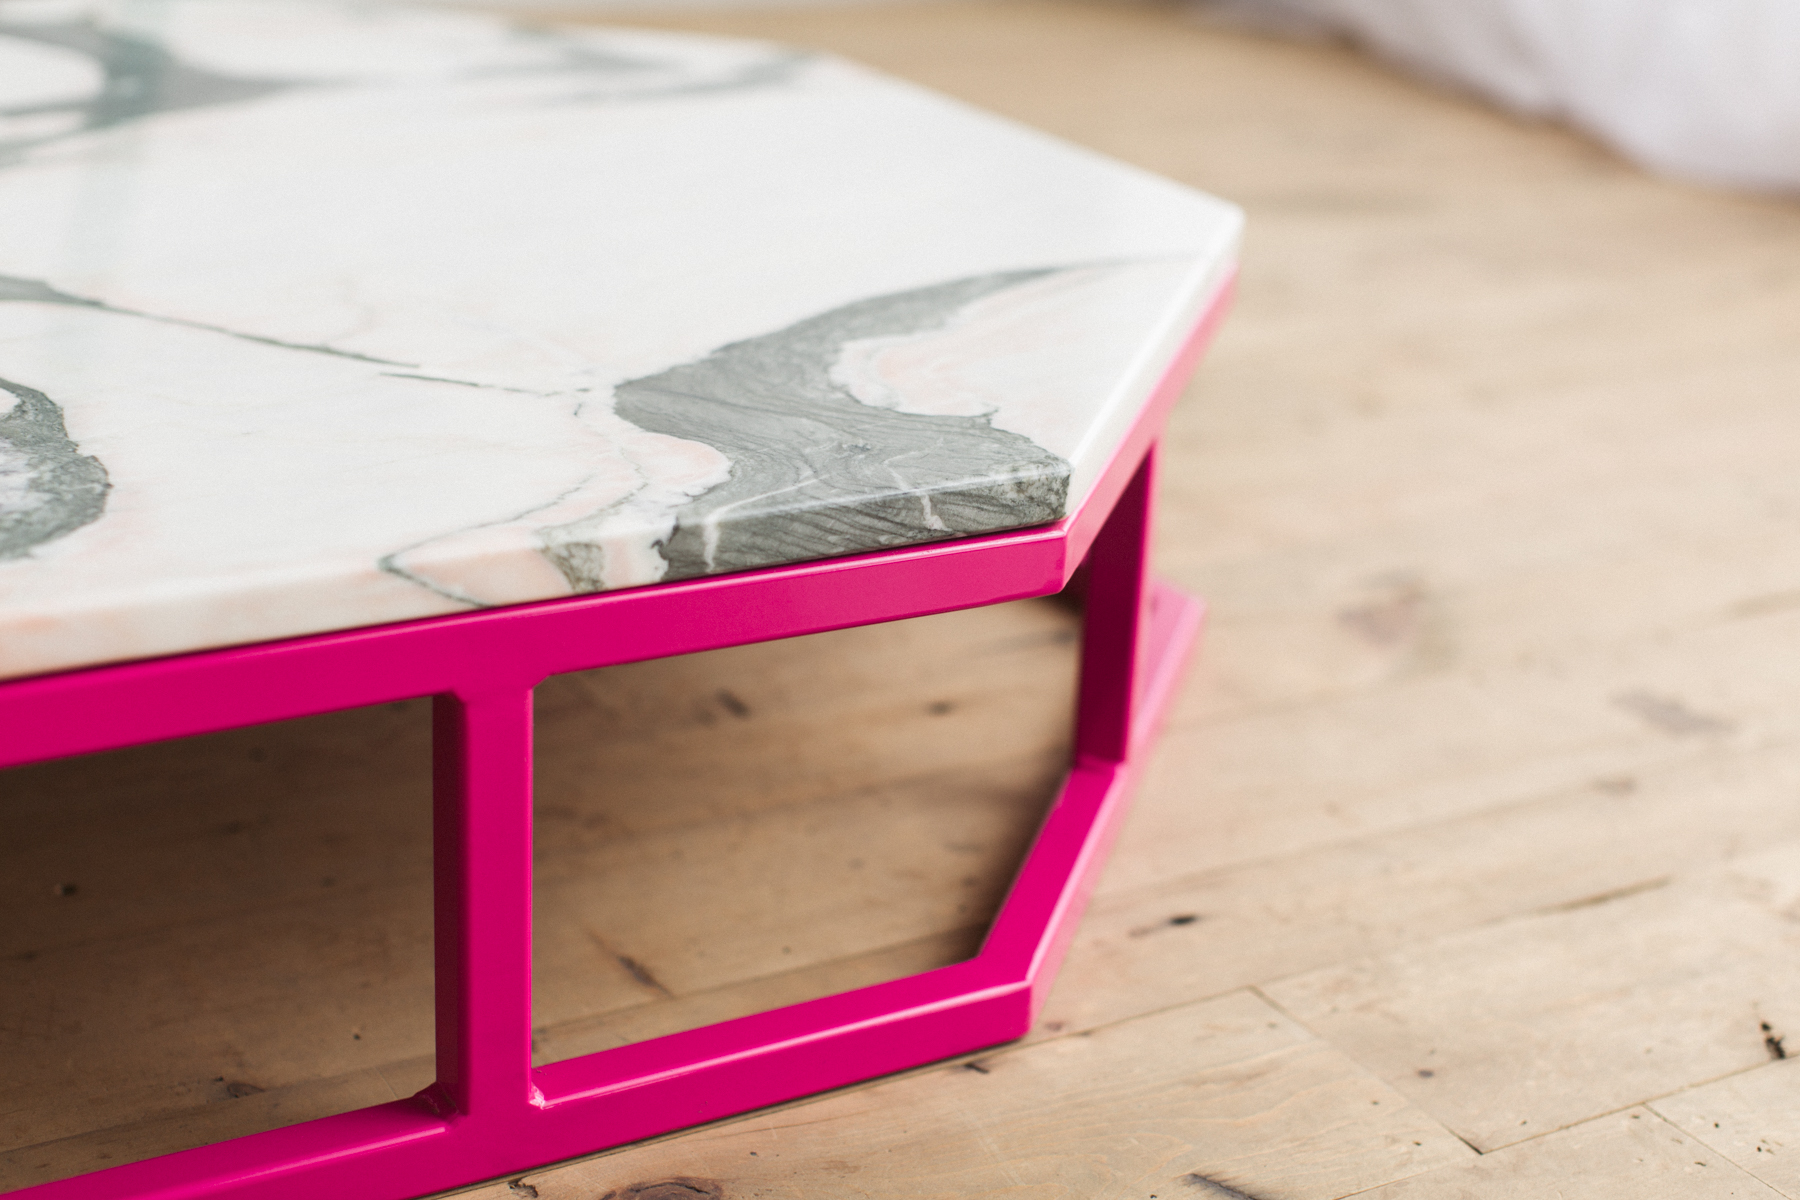 Amazing Granite And Steel Octagon Coffee Table Factor Fabrication With Pink  Coffee Table.